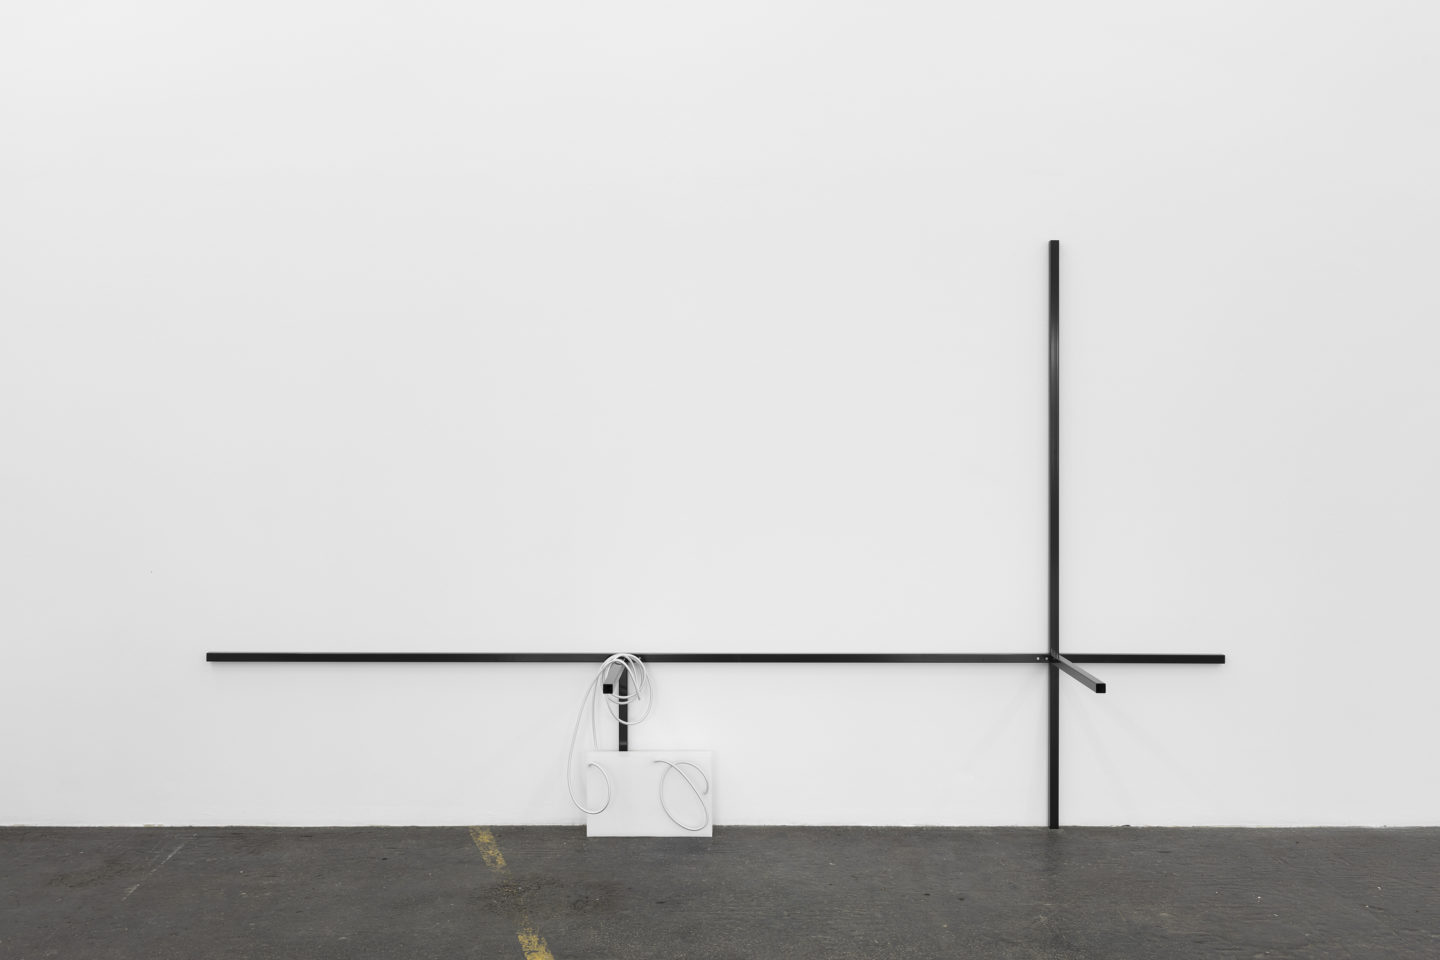 Exhibition View Valentina Stieger Soloshow «Indoor Life / view on Another Ambient System 3, 2018; Casted Conditions 1, 2018» at Kunsthalle St. Gallen / Photo: Kunst Halle Sankt Gallen, Gunnar Meier / Courtesy: the artist and Galerie Stampa, Basel